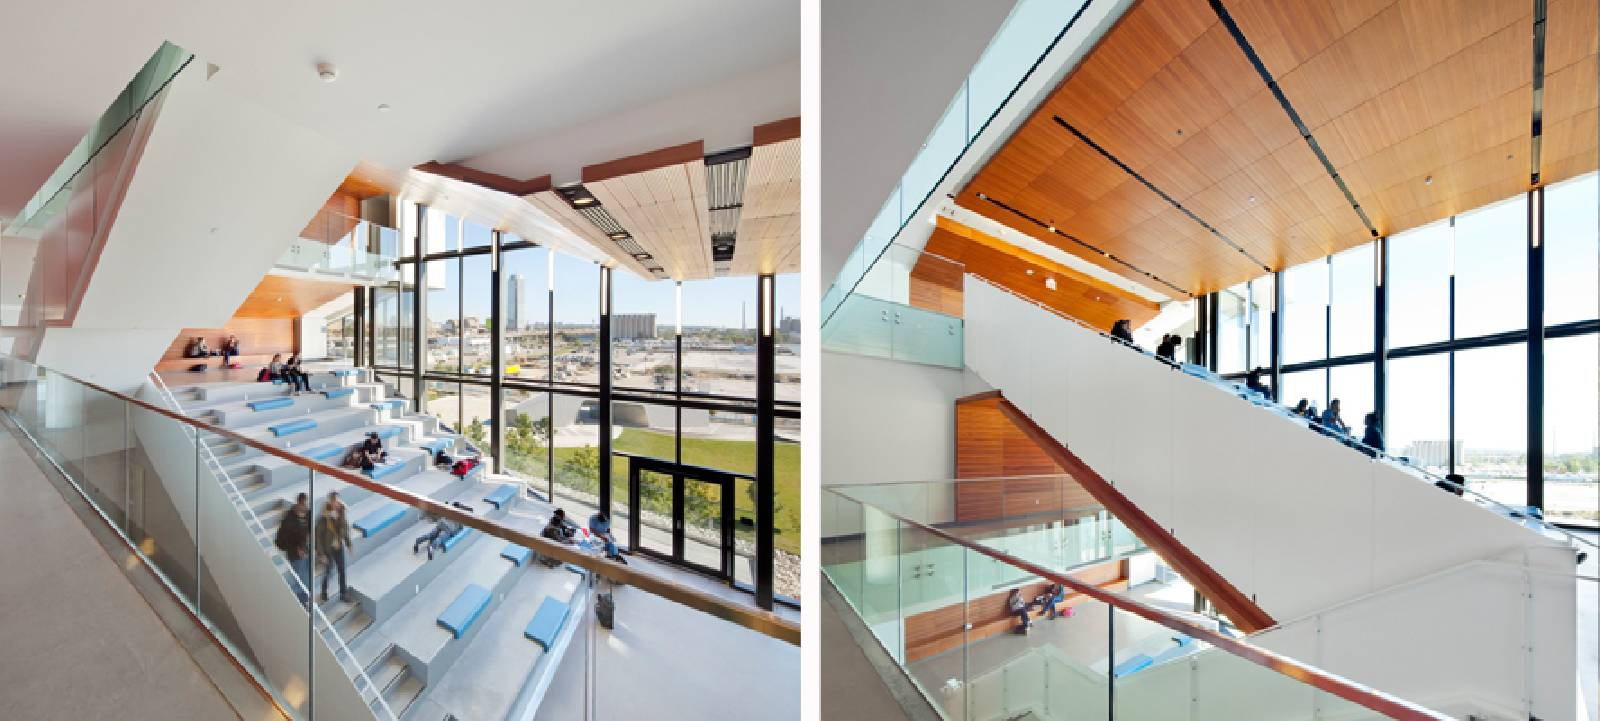 13 George Brown College Waterfront Campus By Stantec KPMB